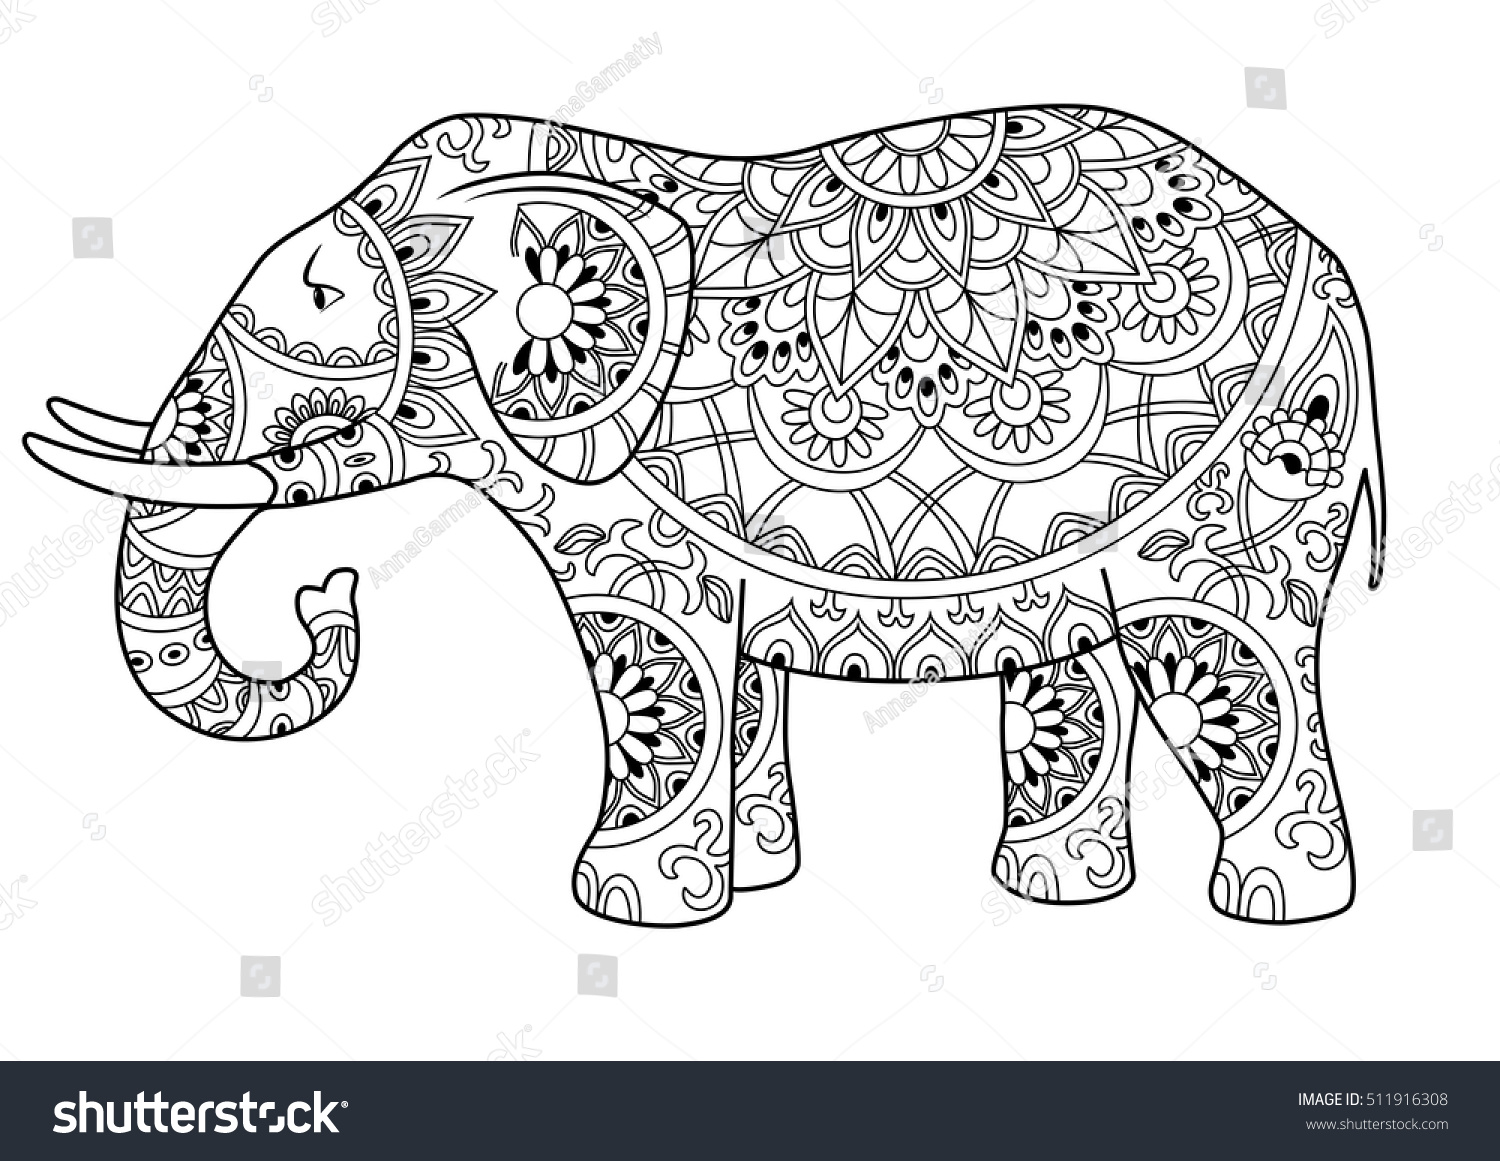 Hand Drawn Decorative Outline Elephant Indian Stock Vector 511916308 ...